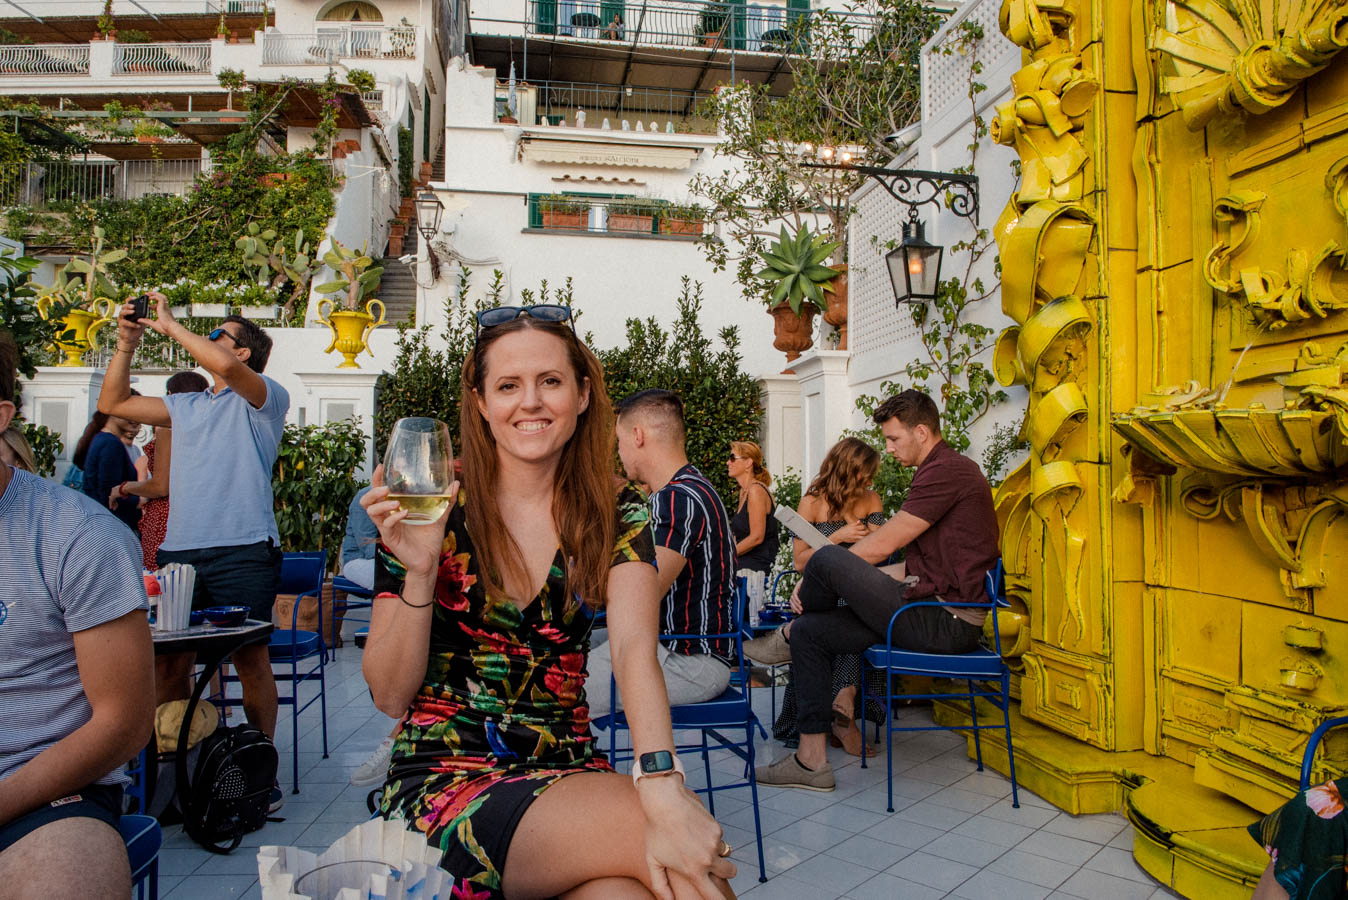 Franco's Bar is one of the best places in Positano to take photos.